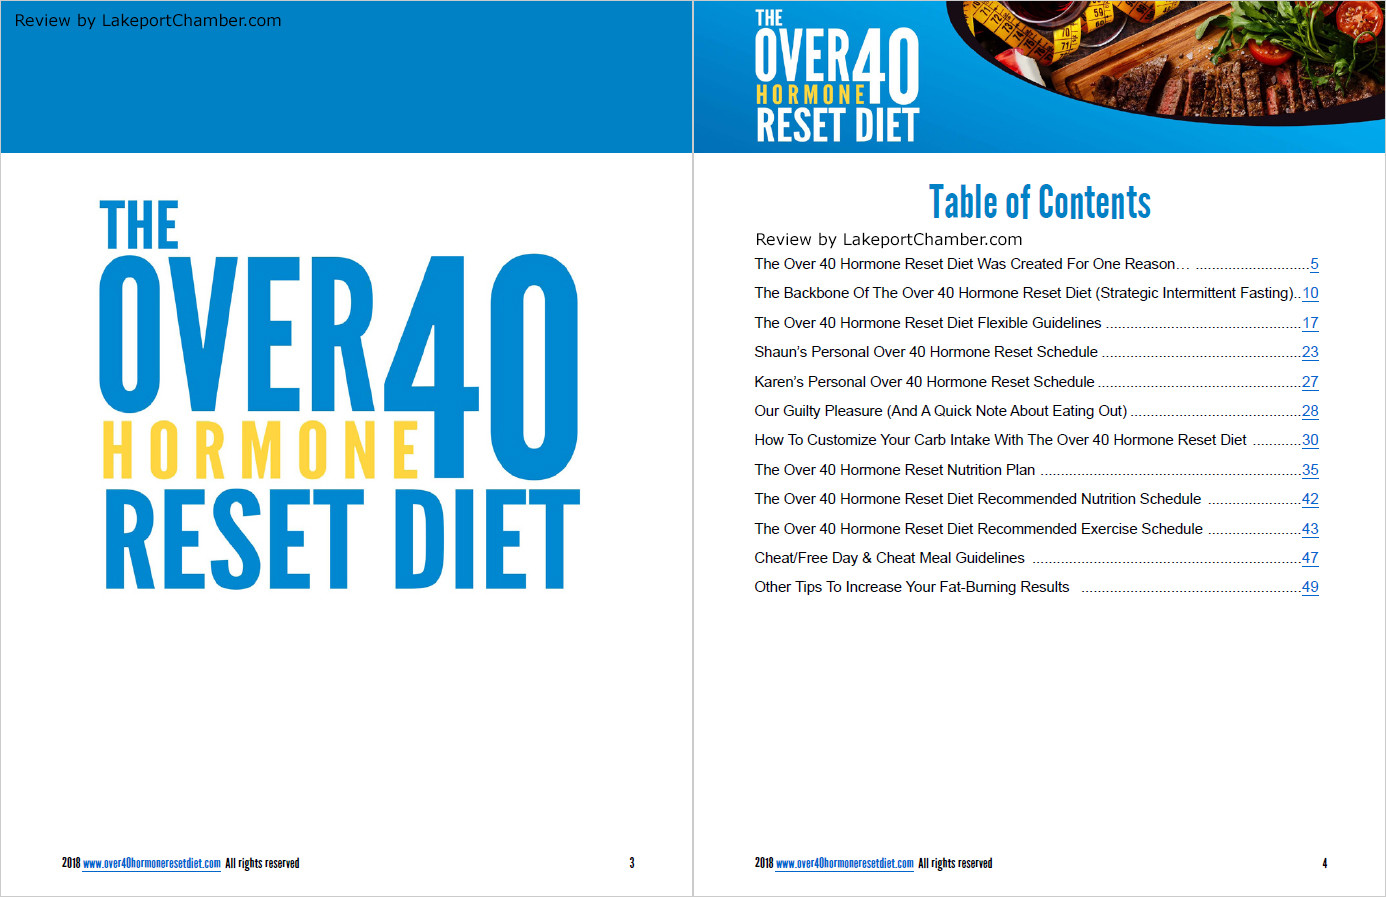 The Over 40 Hormone Reset Diet Table of Contents